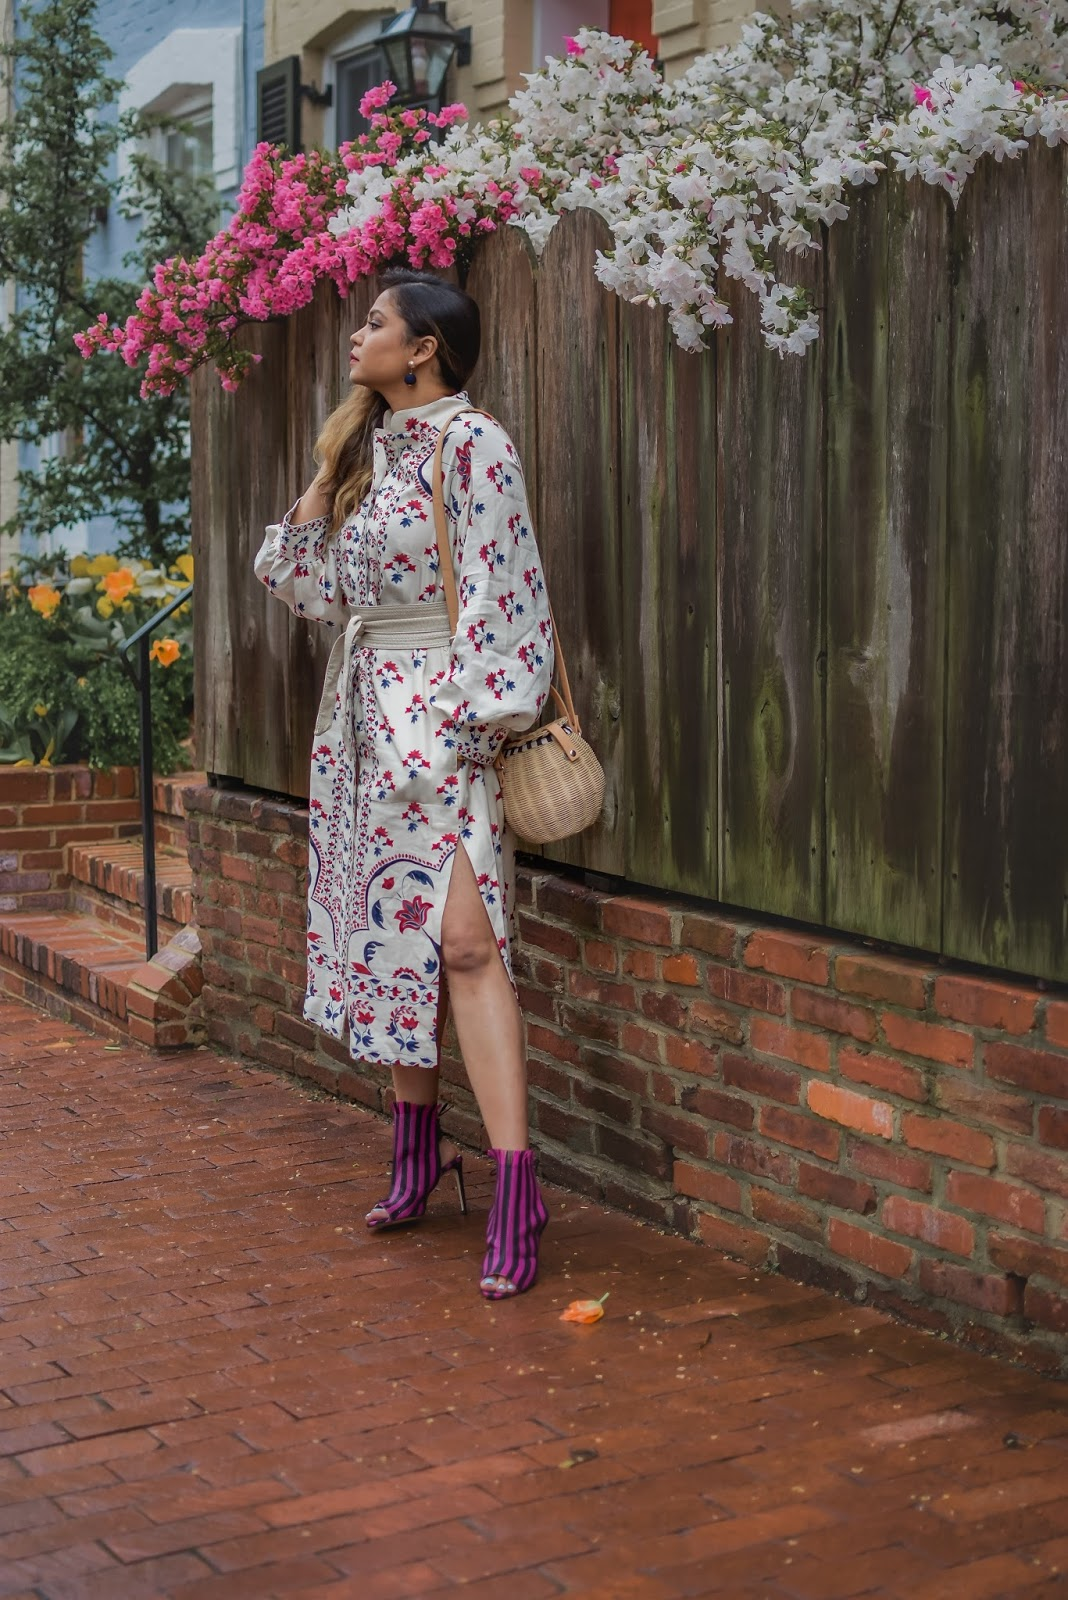 HM patterned dress, kimono dress, linen dress, printed kimono, obi belt, street style, spring look, print mixing, zara pink printed booties, wedding guest style, ratan bag, straw bag, myriad musings